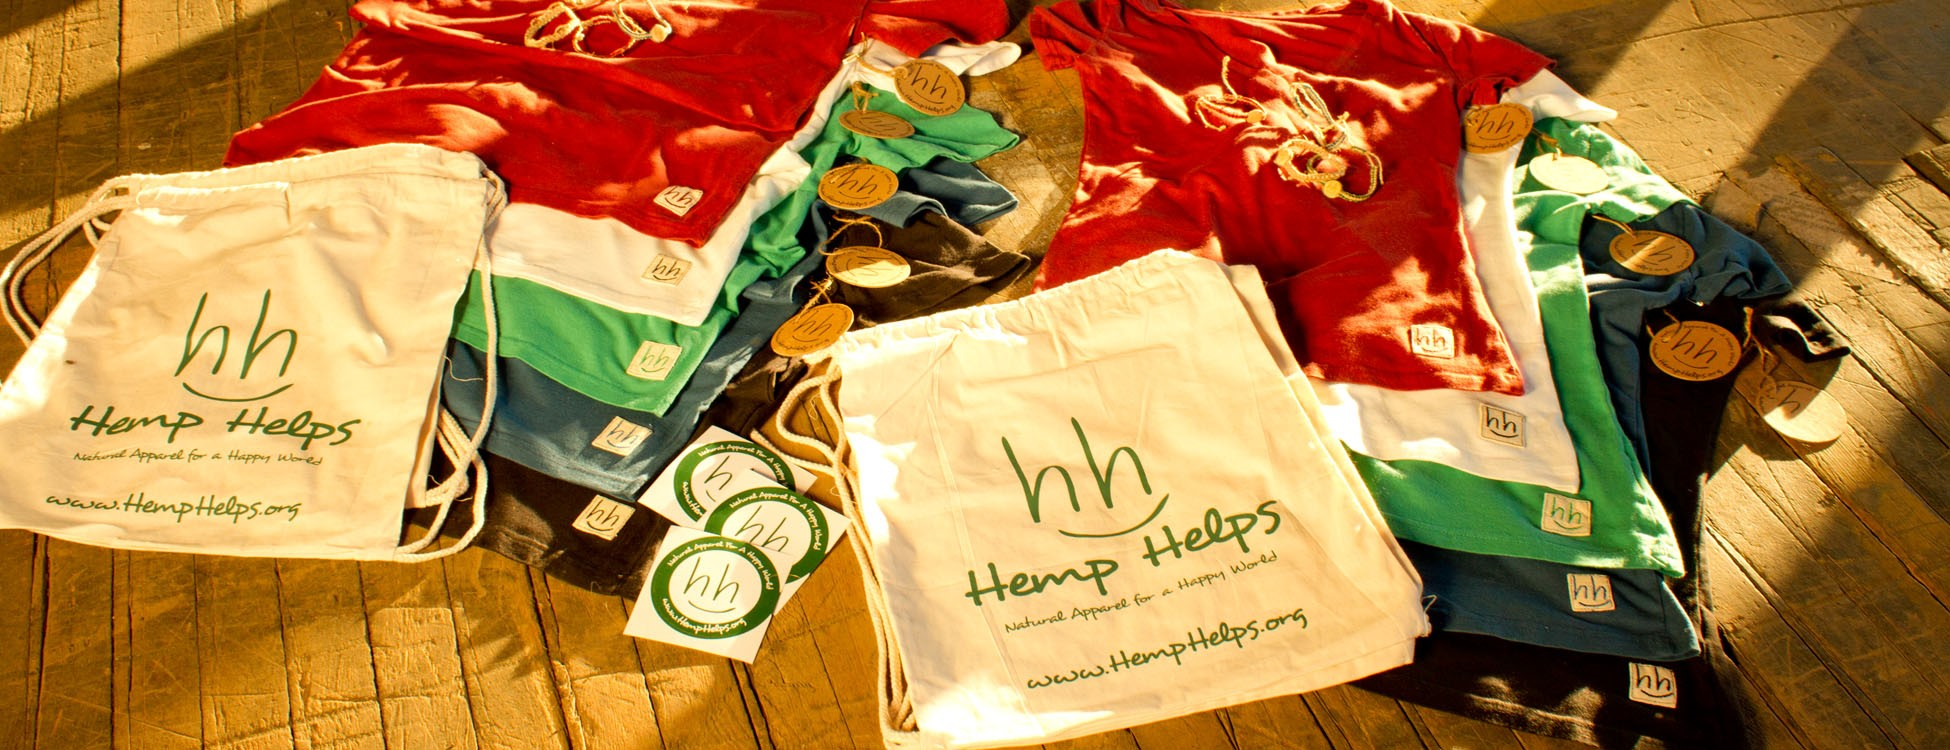 hemp helps